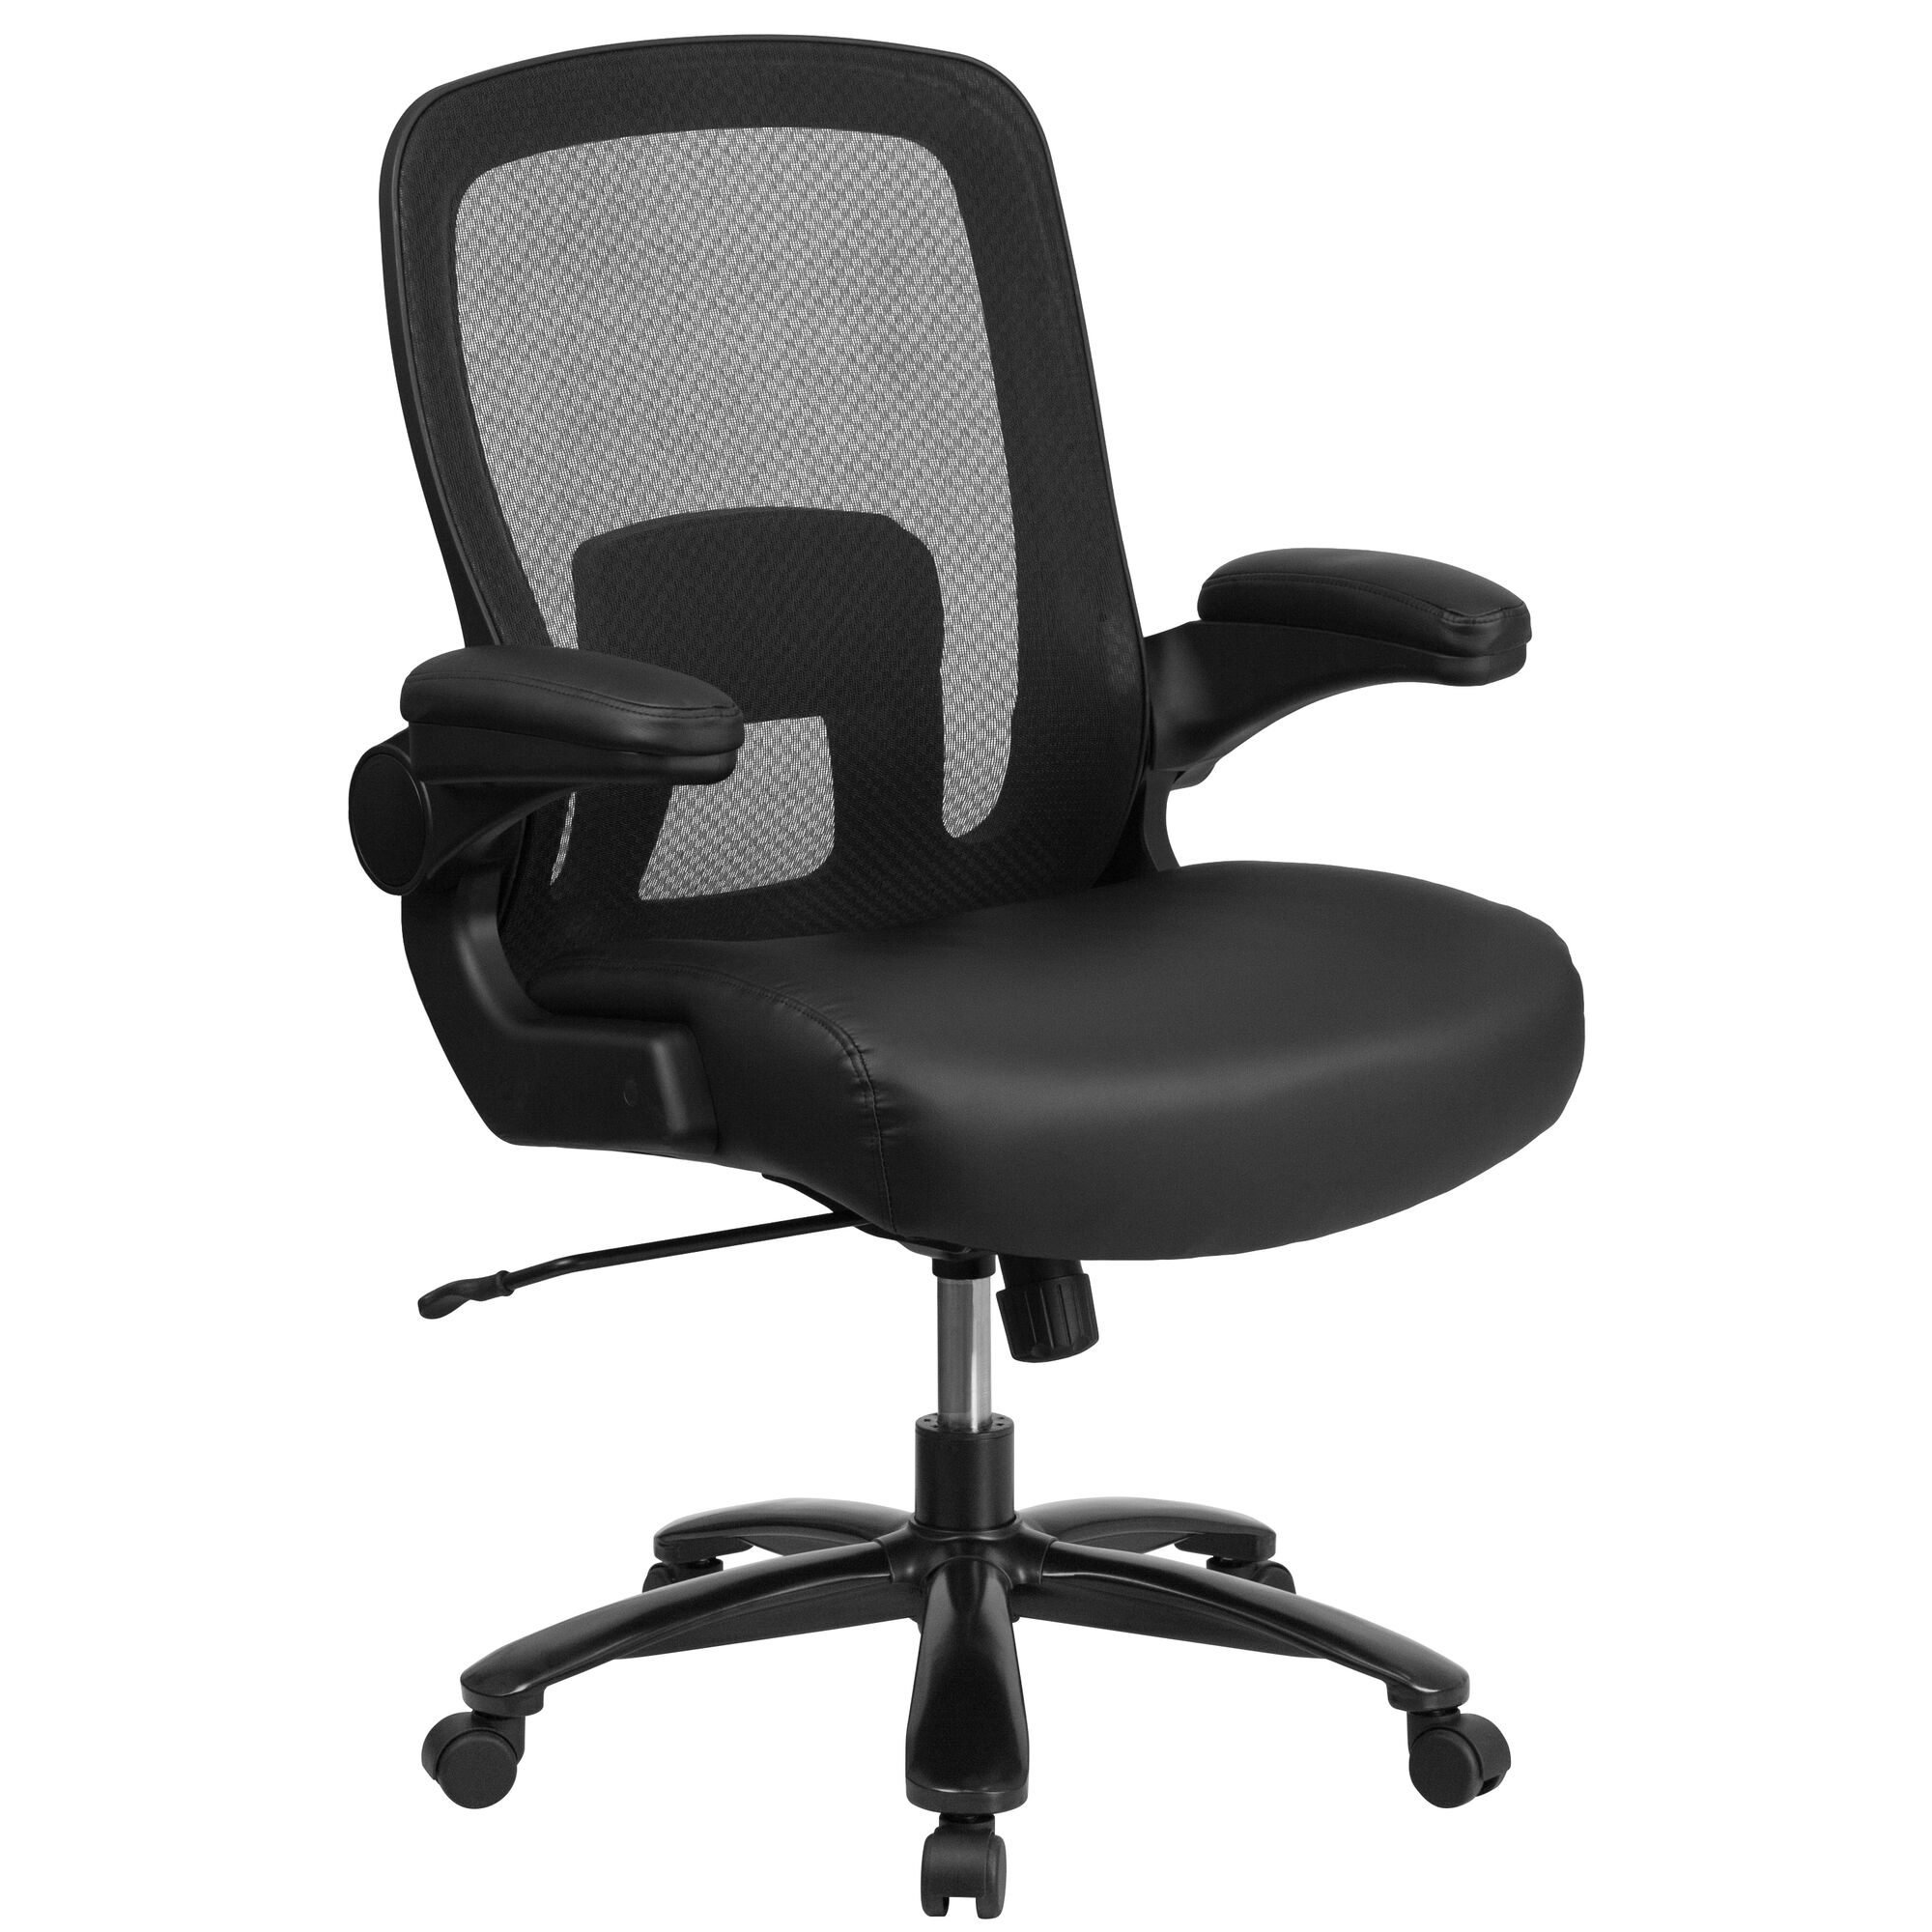 Hercules Series Big Tall 500 Lb Rated Black Mesh Leather Executive Ergonomic Office Chair With Adjustable Lumbar